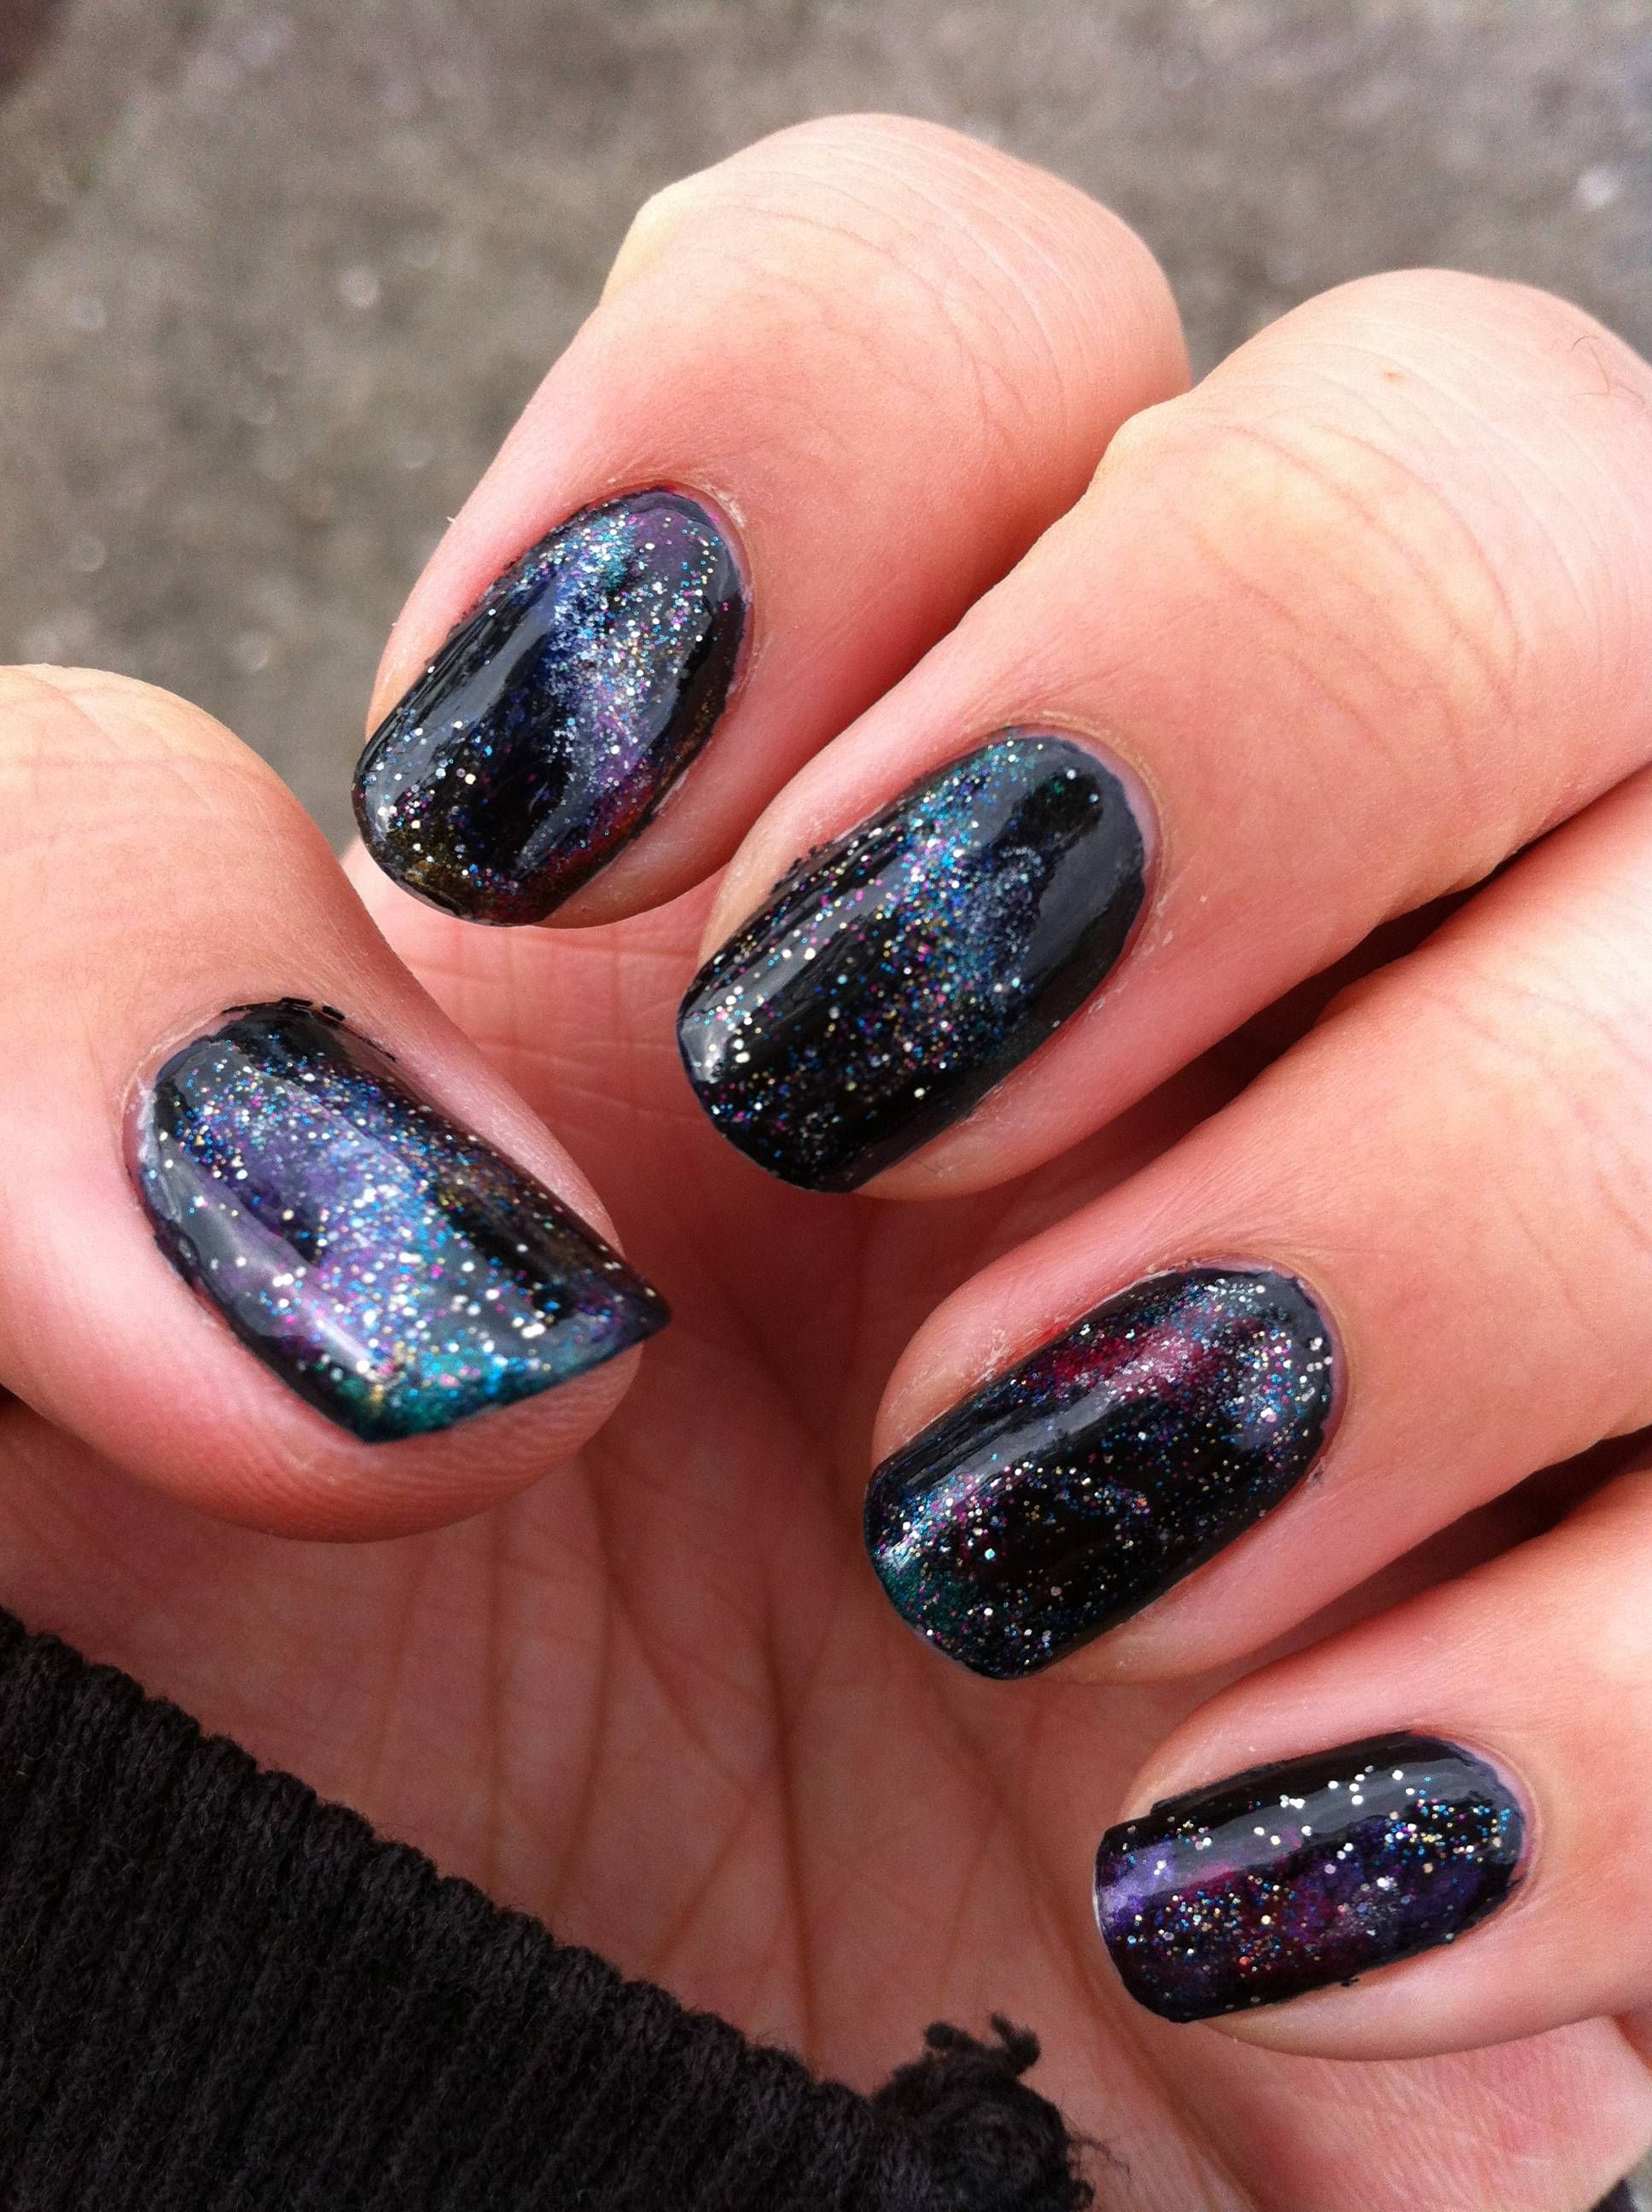 Decided to try galaxy nails on the night before my first uni exam ...